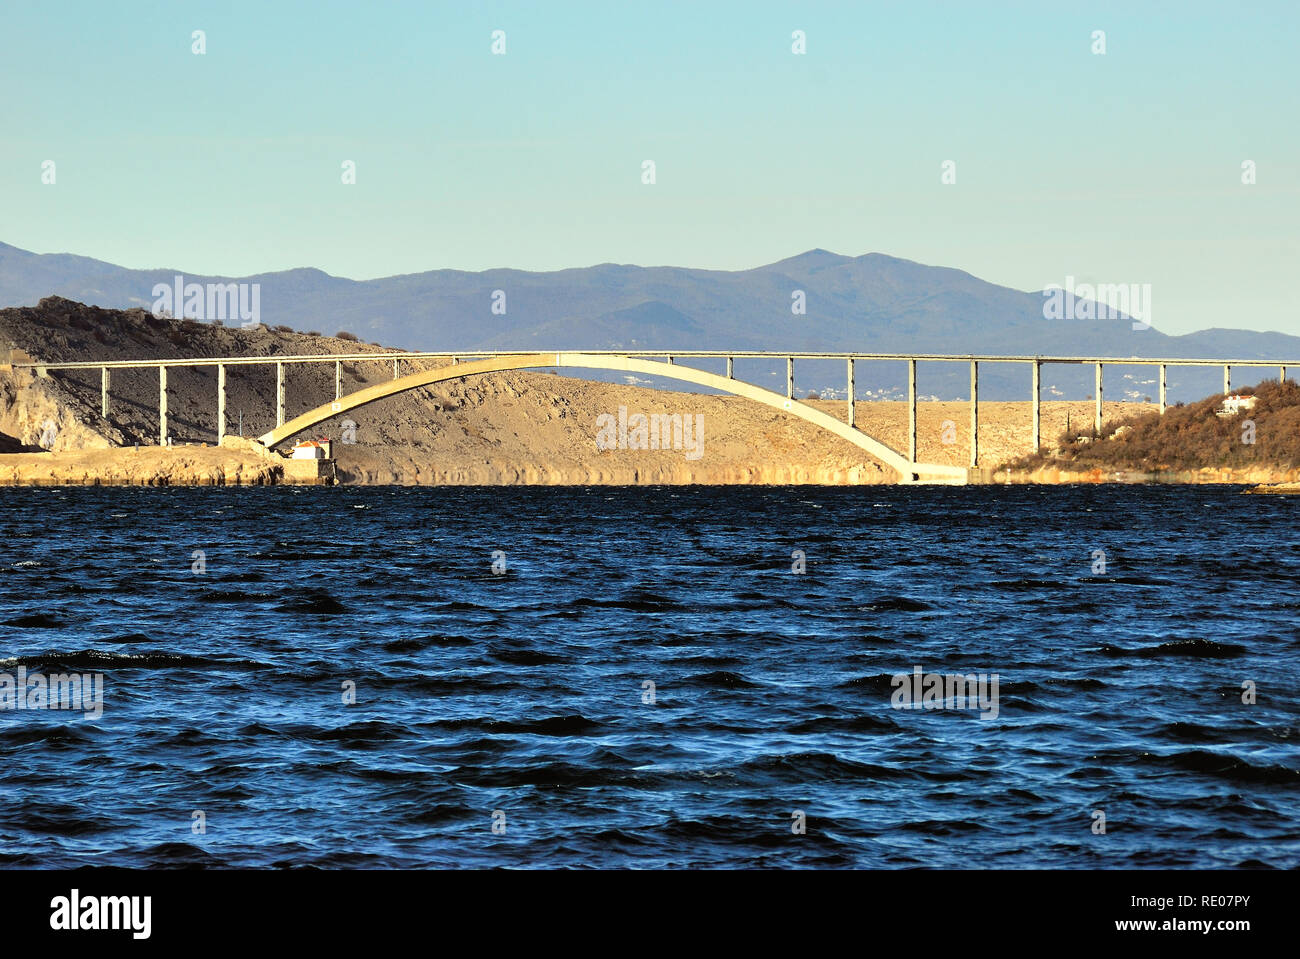 """Croatia, Dalmatian coast, Jadranovo village, the bridge that connects the mainland with the island of Krk. Krk Bridge is a 1430 m long reinforced concrete arch bridge connecting the Croatian island of Krk to the mainland and carrying over a million vehicles per year. The longer of the bridge's two arches is the second longest concrete arch in the world and among the longest arches of any construction. The bridge was completed and opened in July 1980 and originally named Titov most (""""Tito's bridge"""") in honor of Yugoslav president Josip Broz Tito, who had died two months earlier. Stock Photo"""